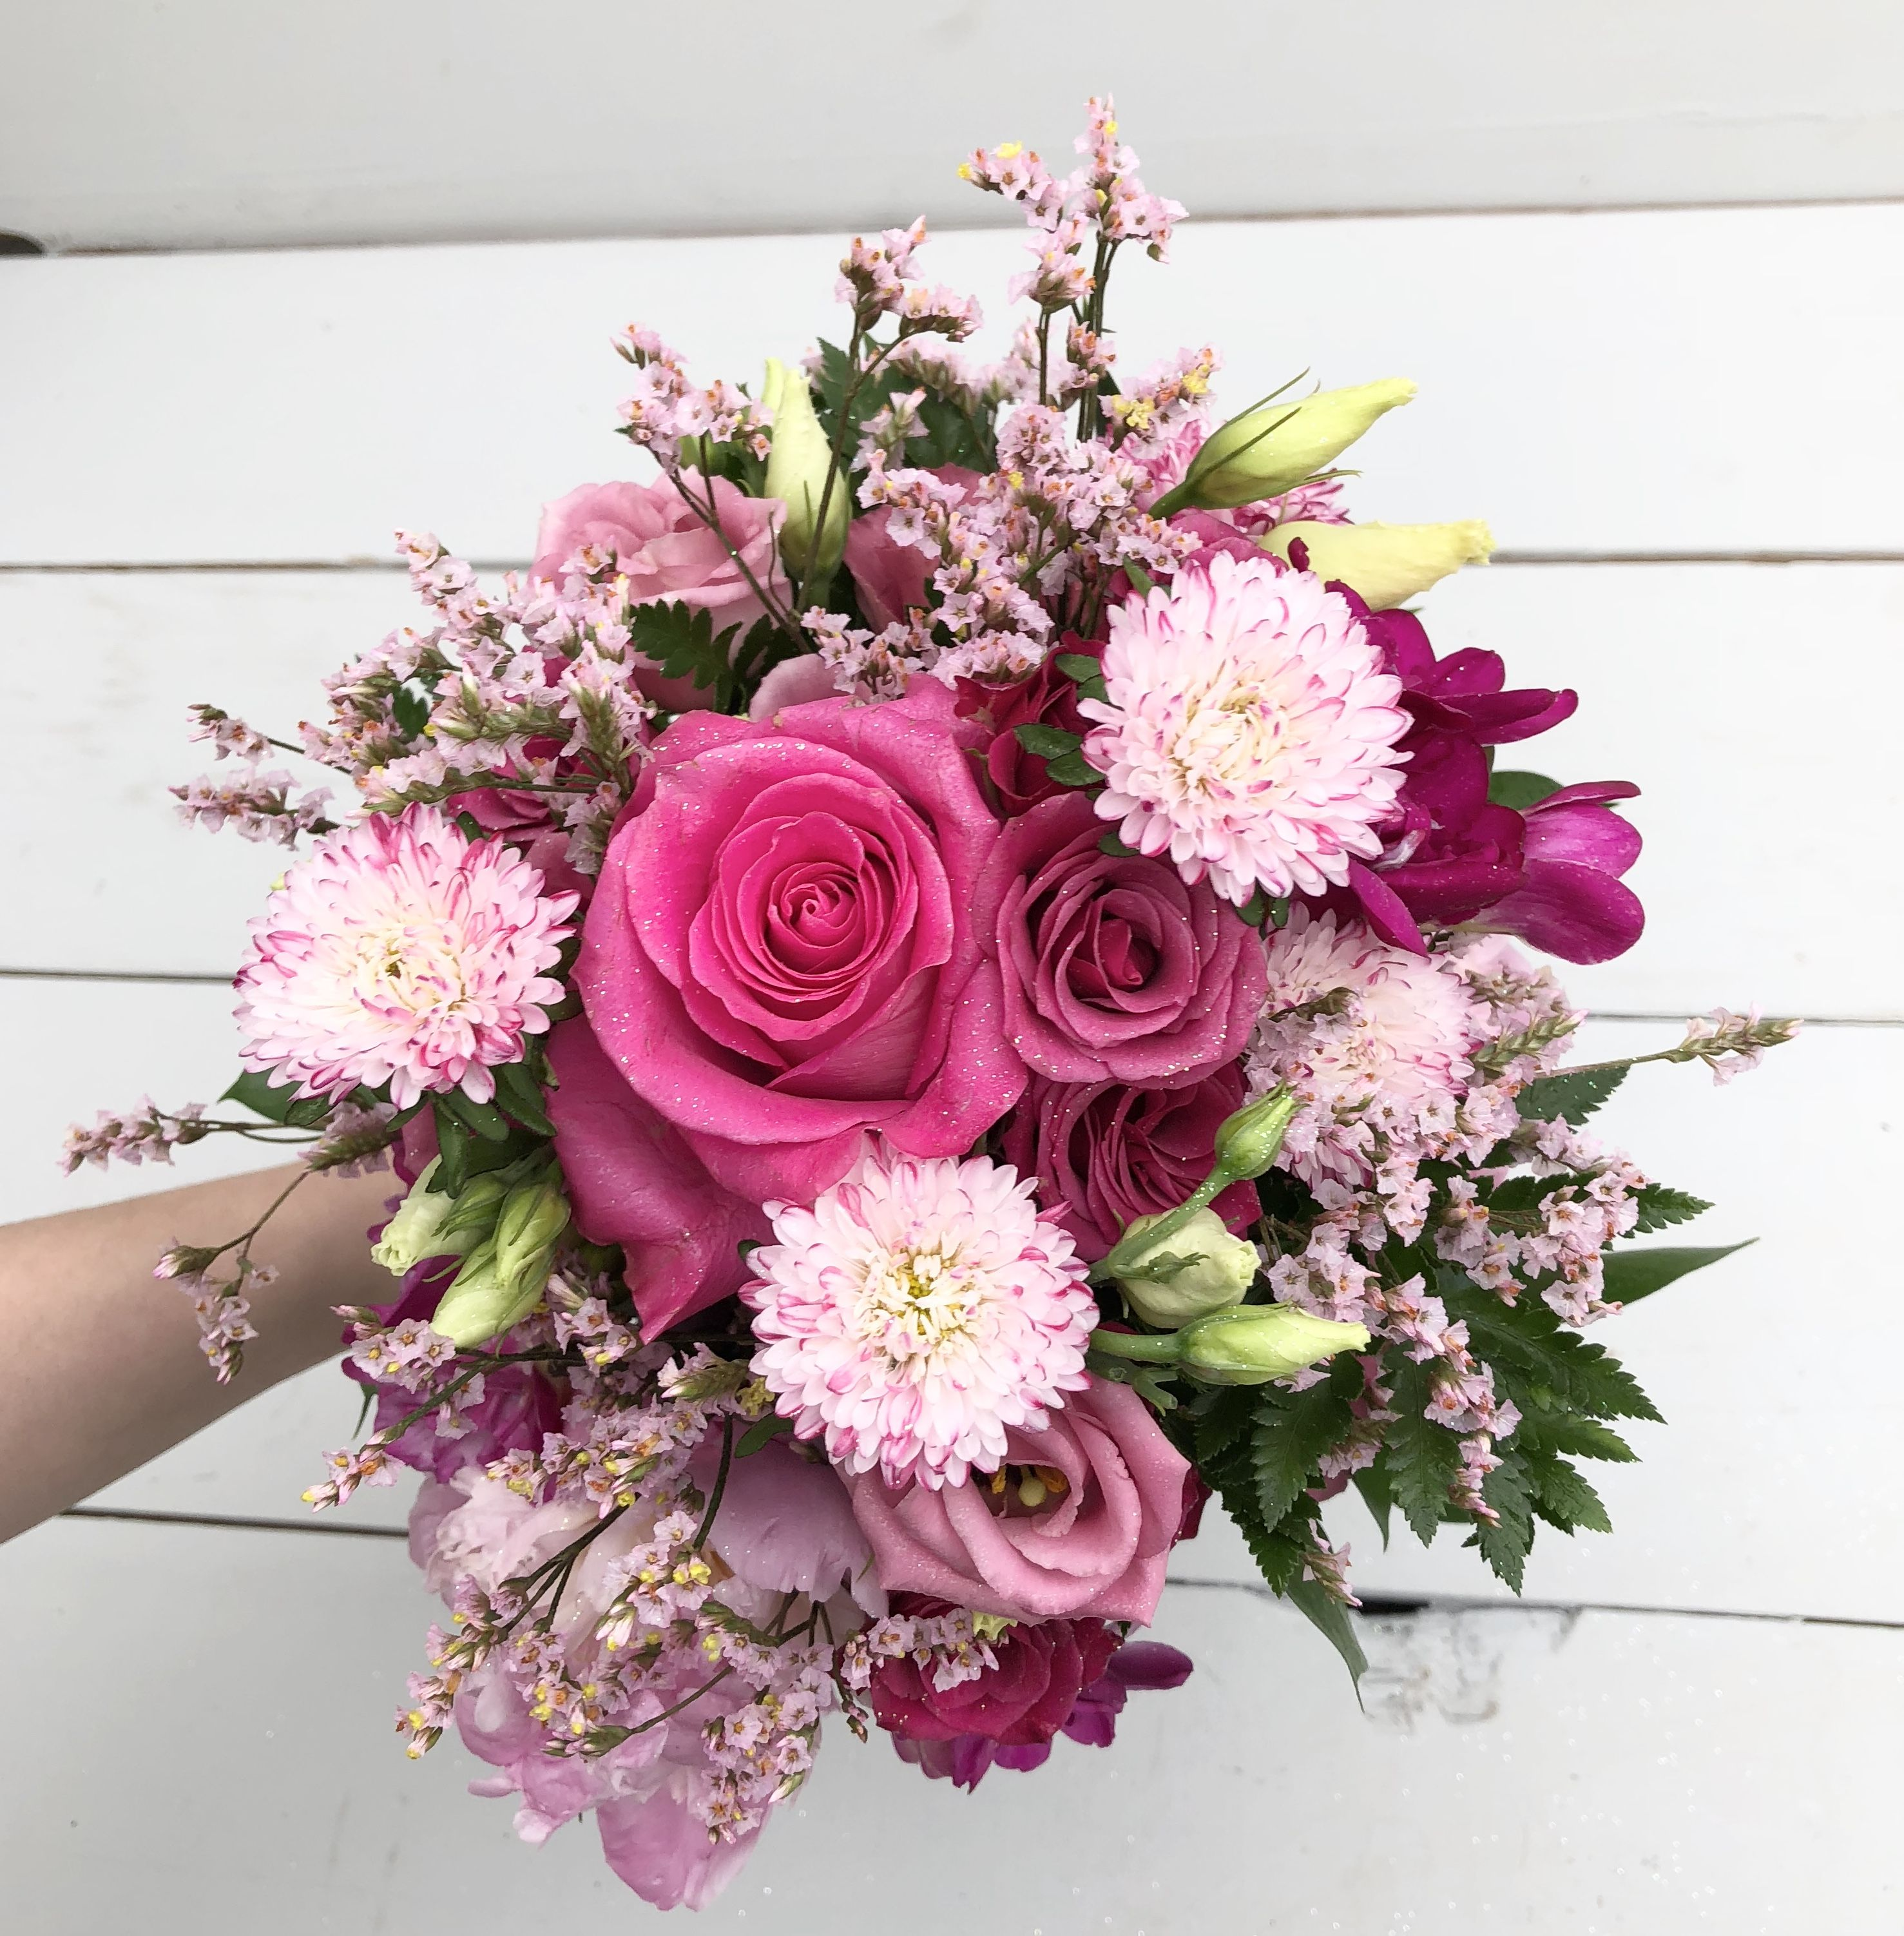 Hot Pink Prom Bouquet in 2020 Hot pink wedding flowers